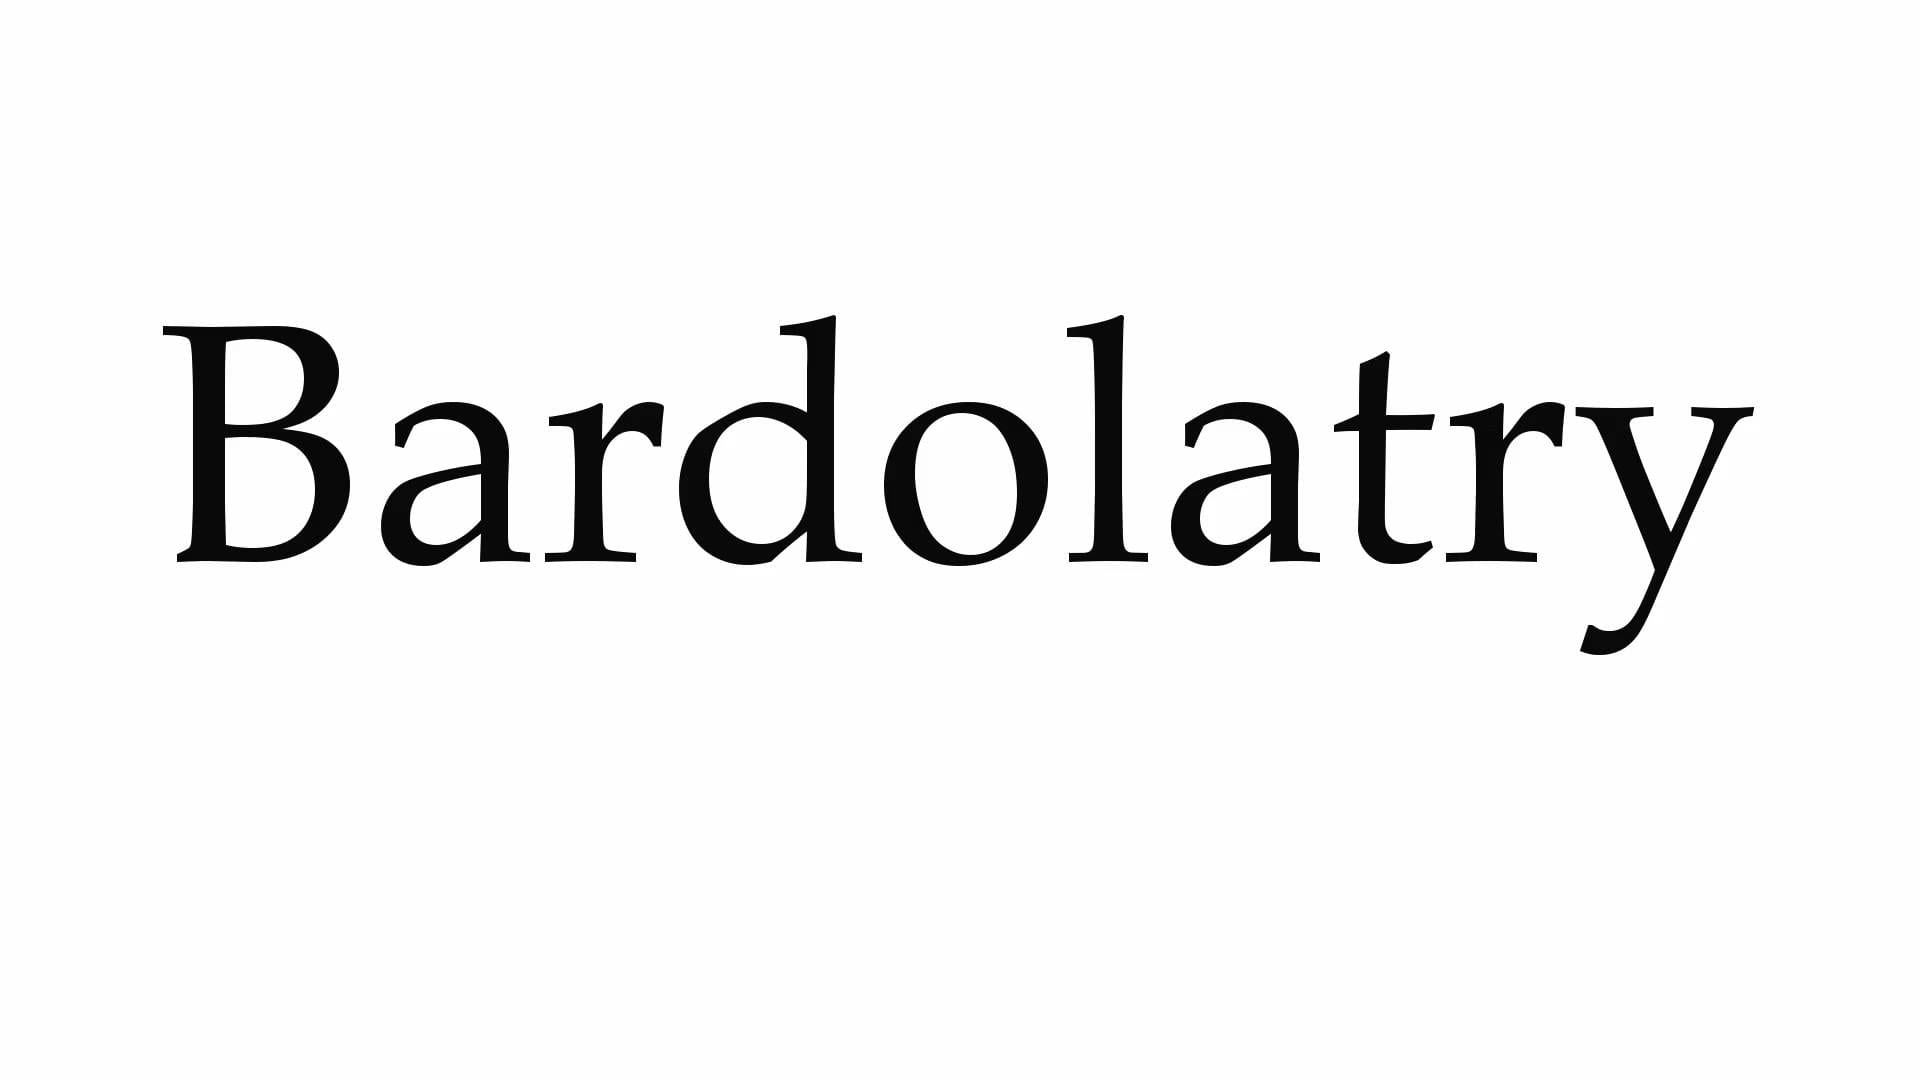 Bardolatory... What Does It Mean?